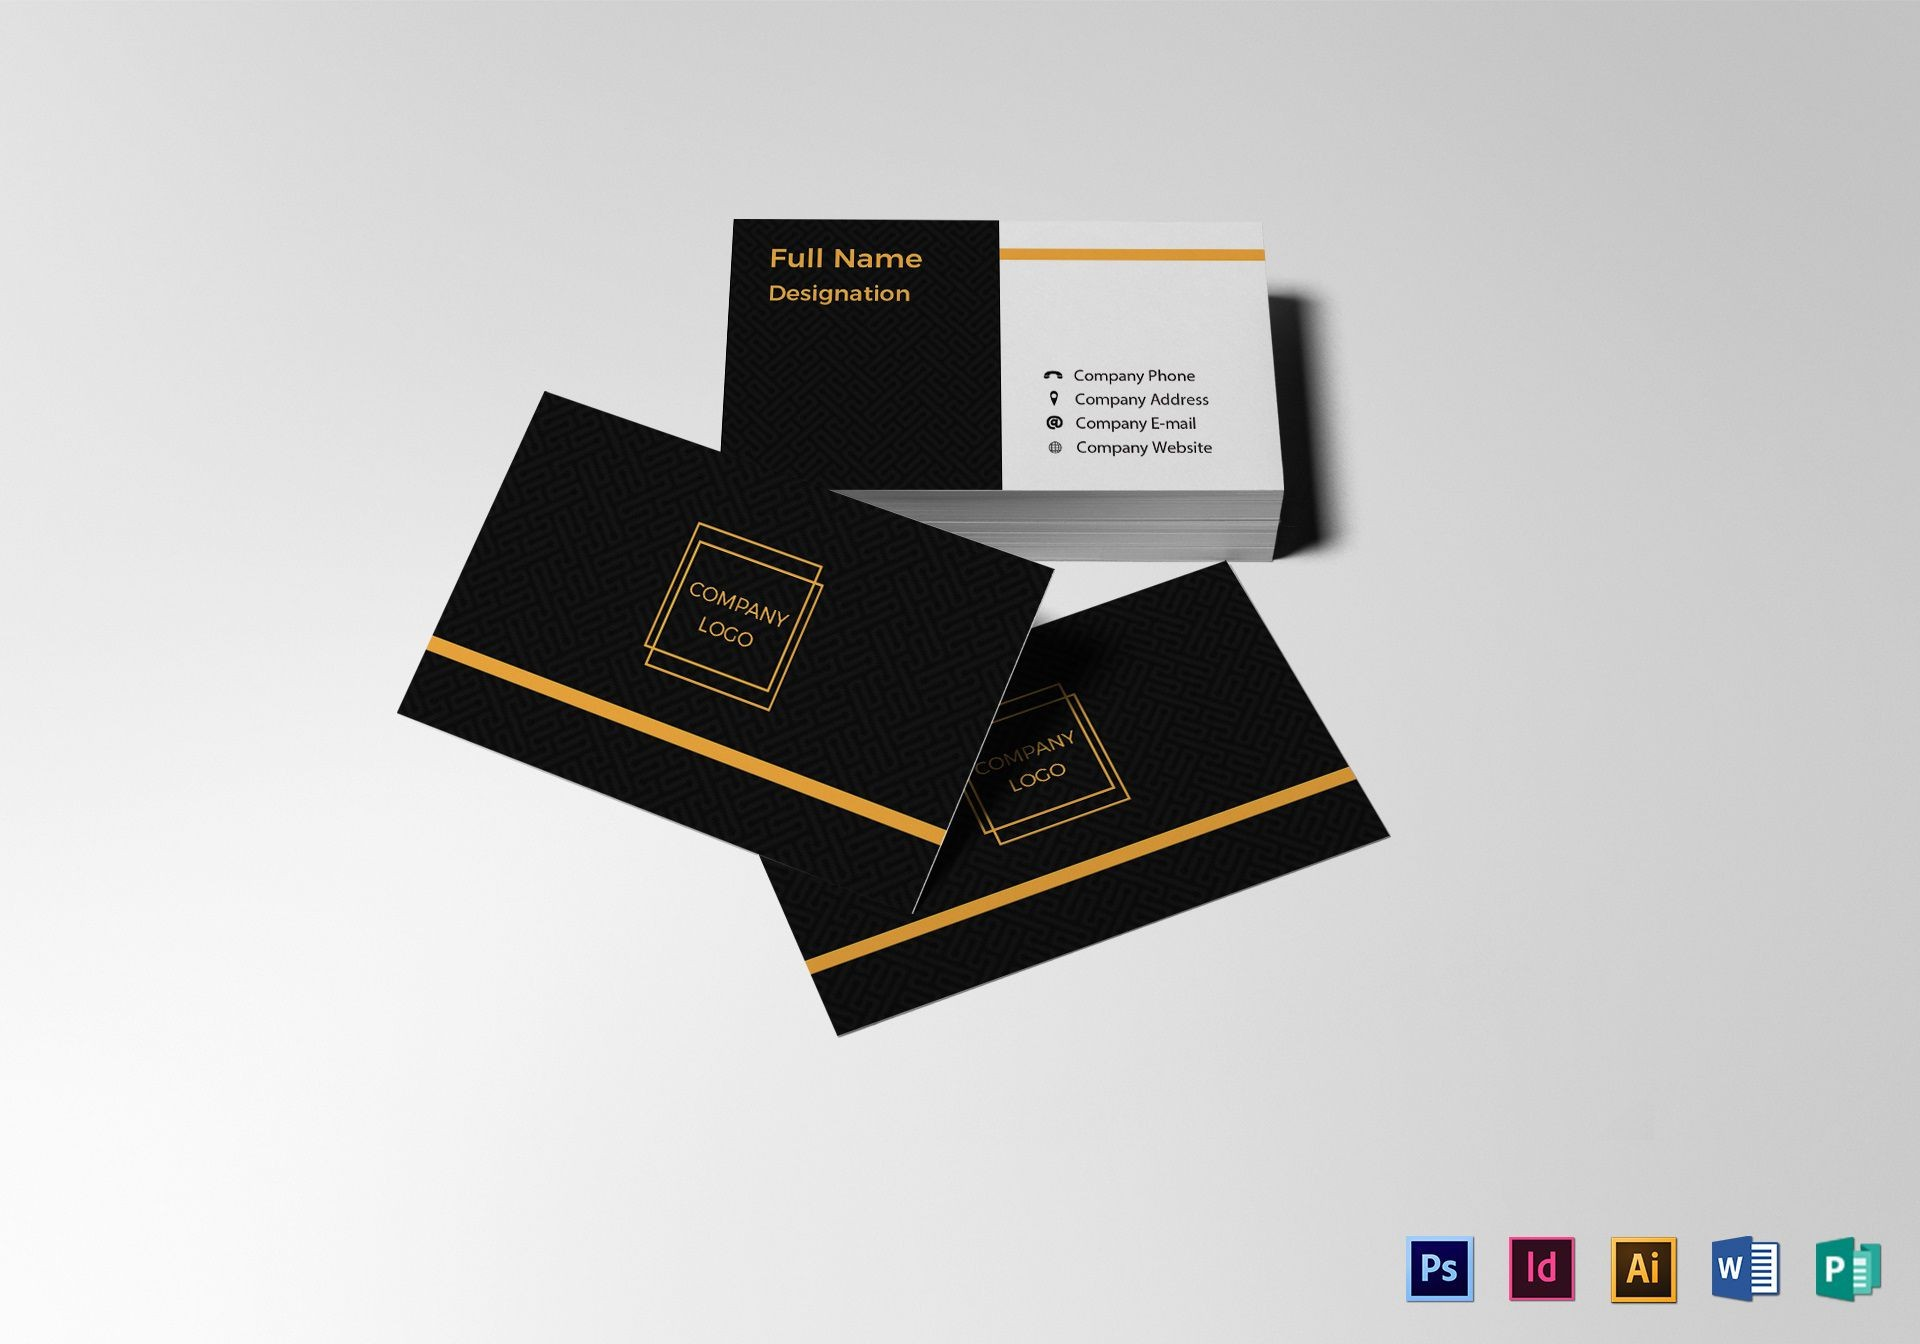 004 Simple Blank Busines Card Template Photoshop Inspiration  Free Download Psd1920